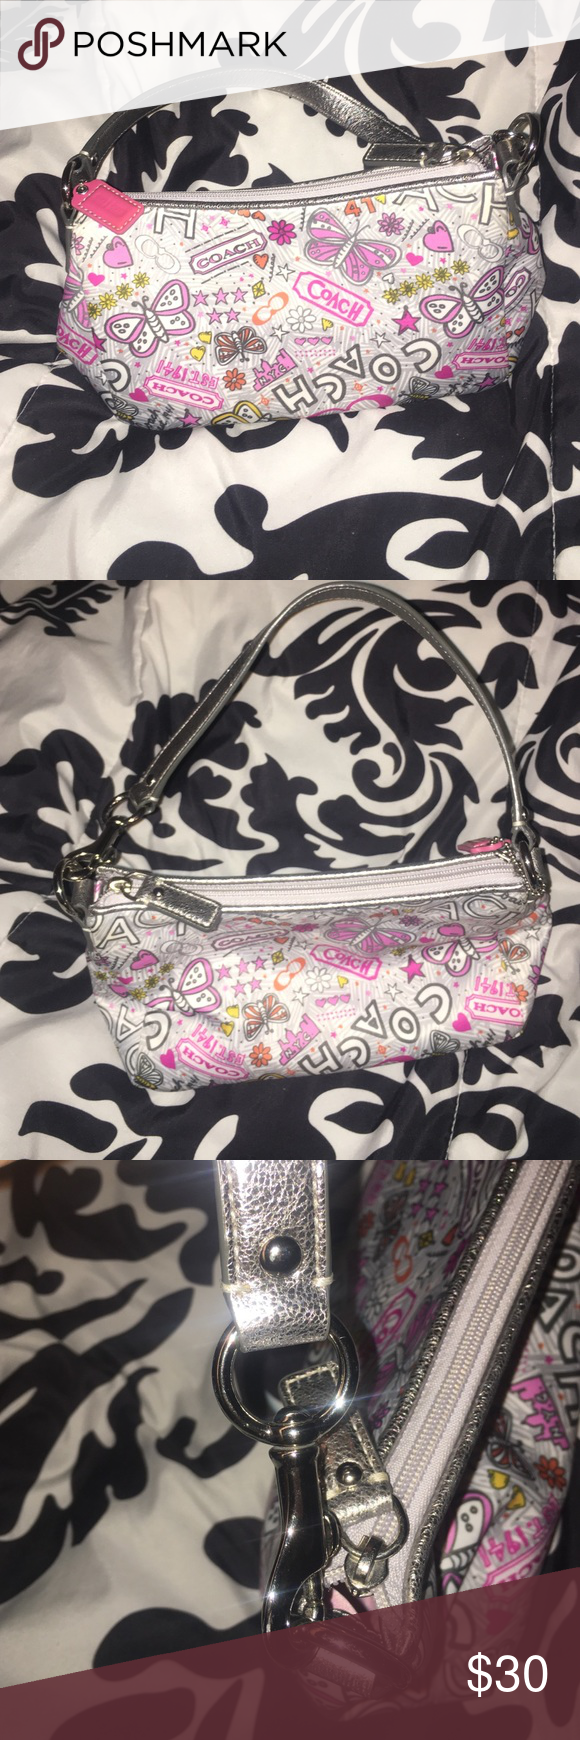 Coach Purse Never used & looks brand new, in a great condition!! The purse is a smaller size. 🛍💖🎀 Coach Bags